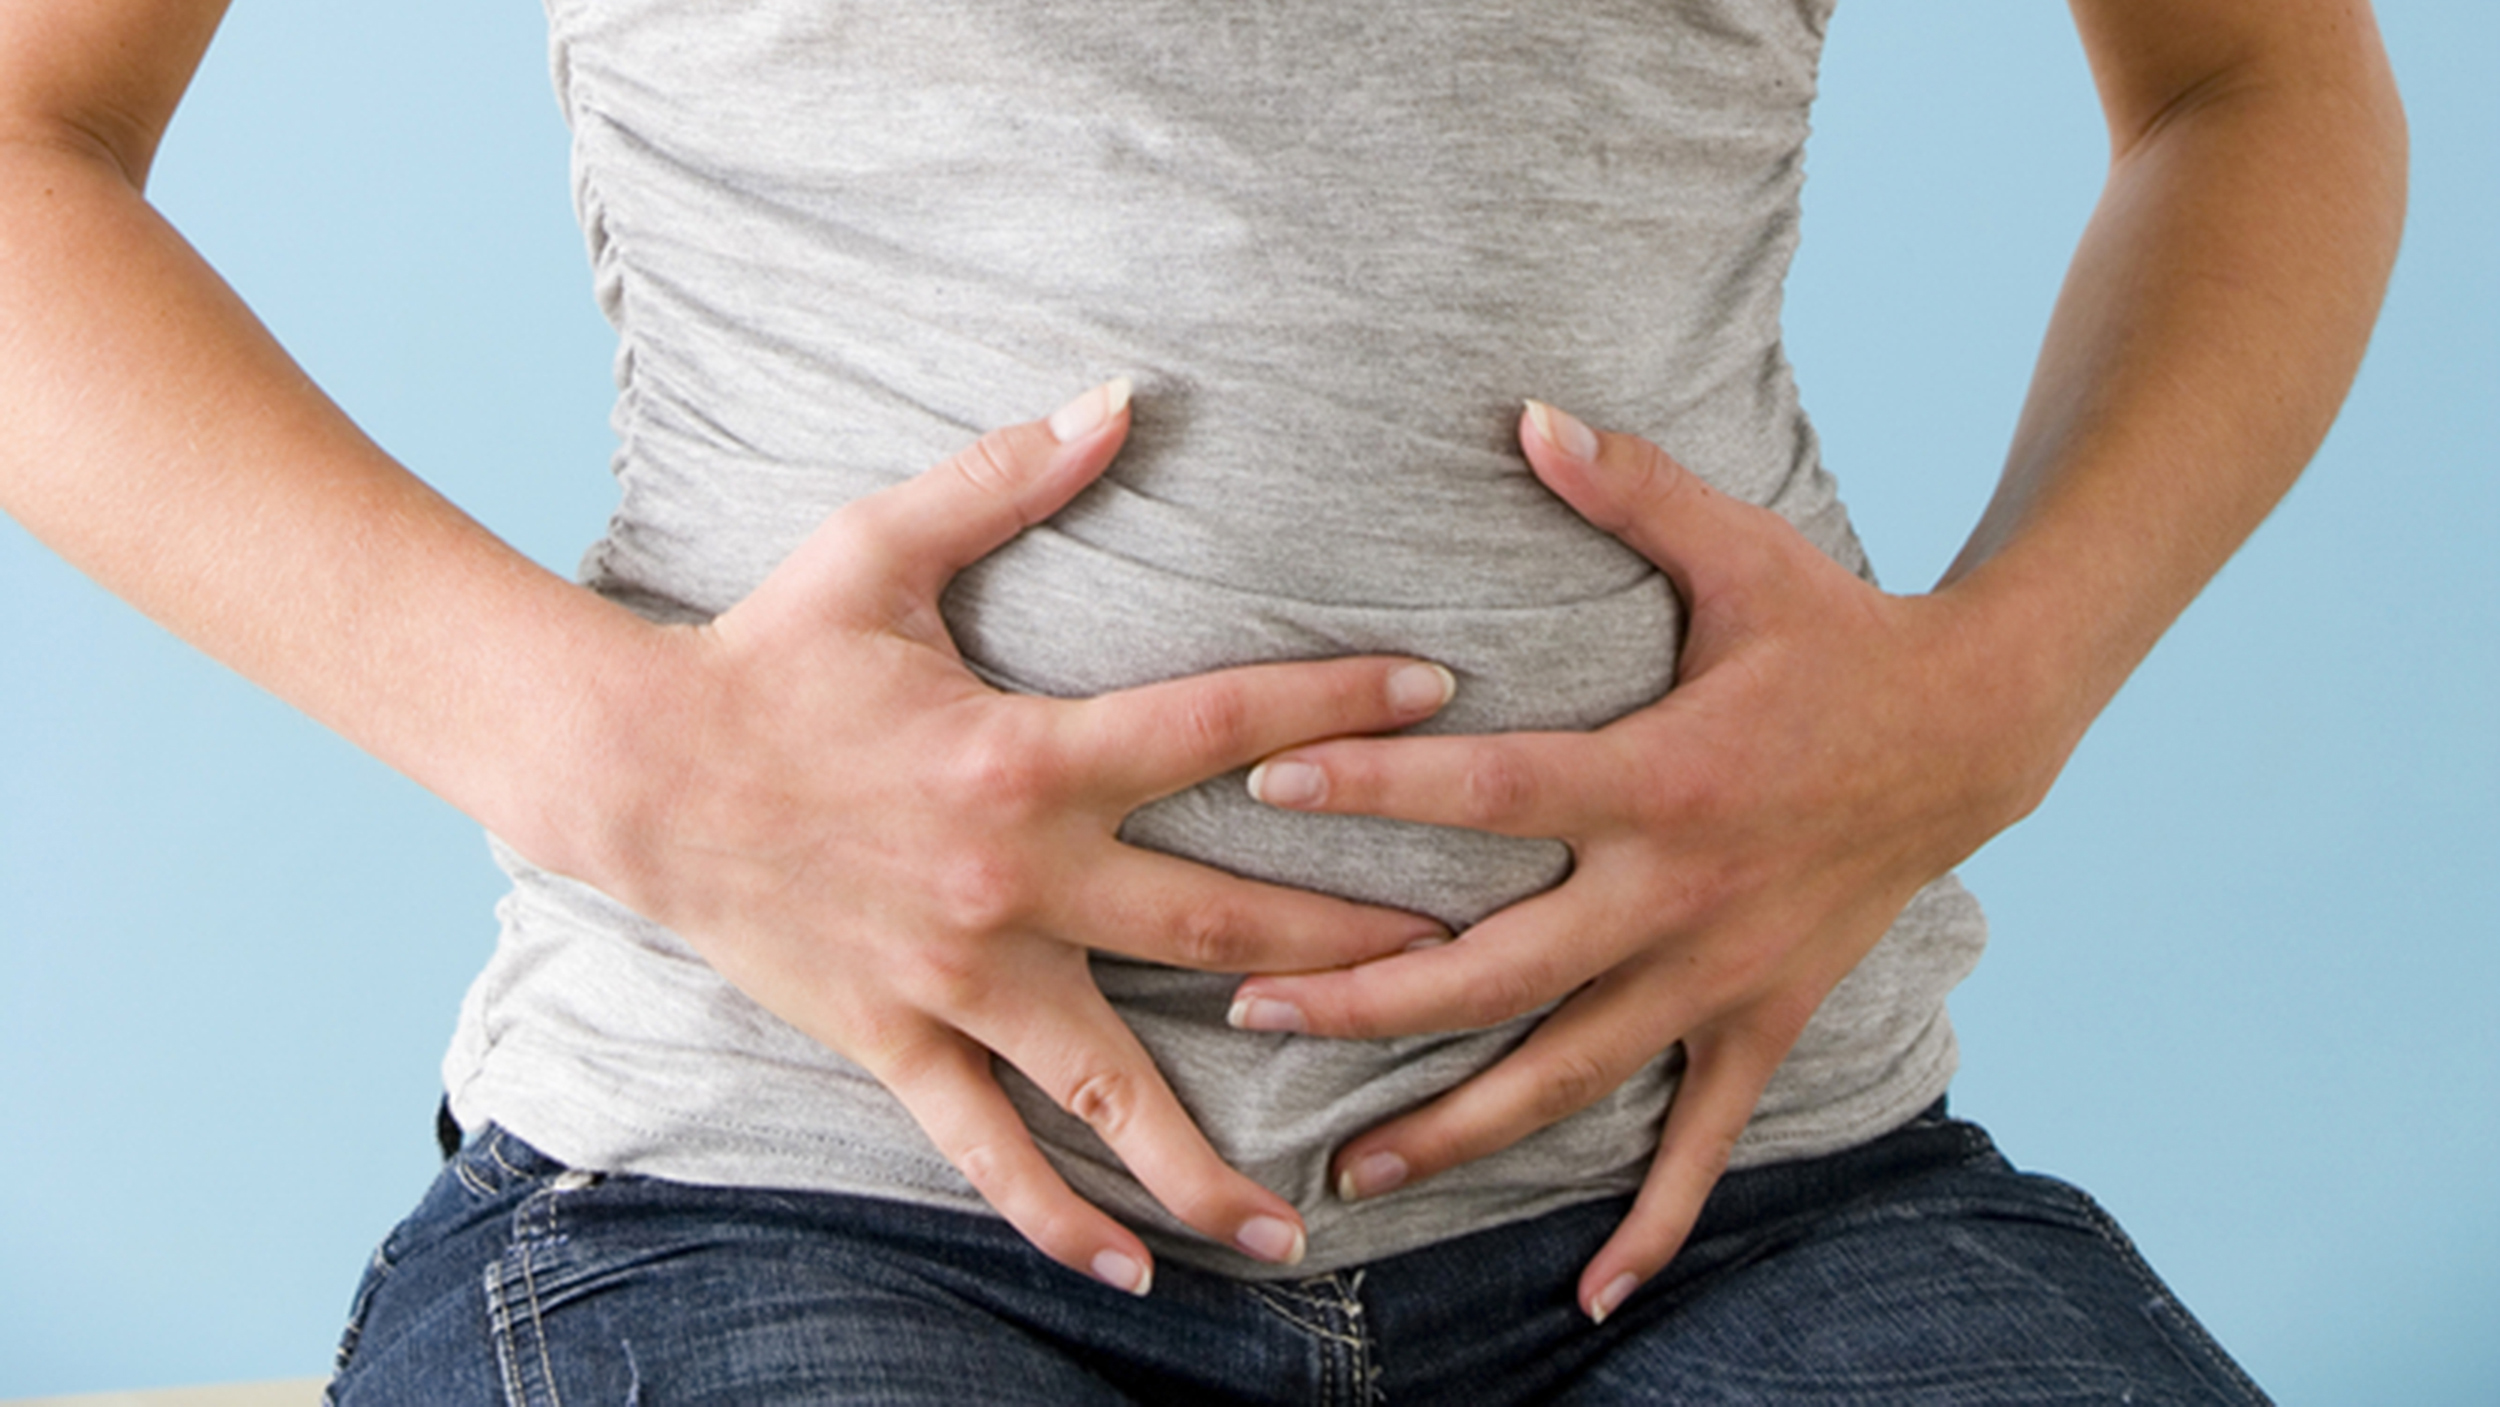 Get Rid of a Gas Bubble in Stomach